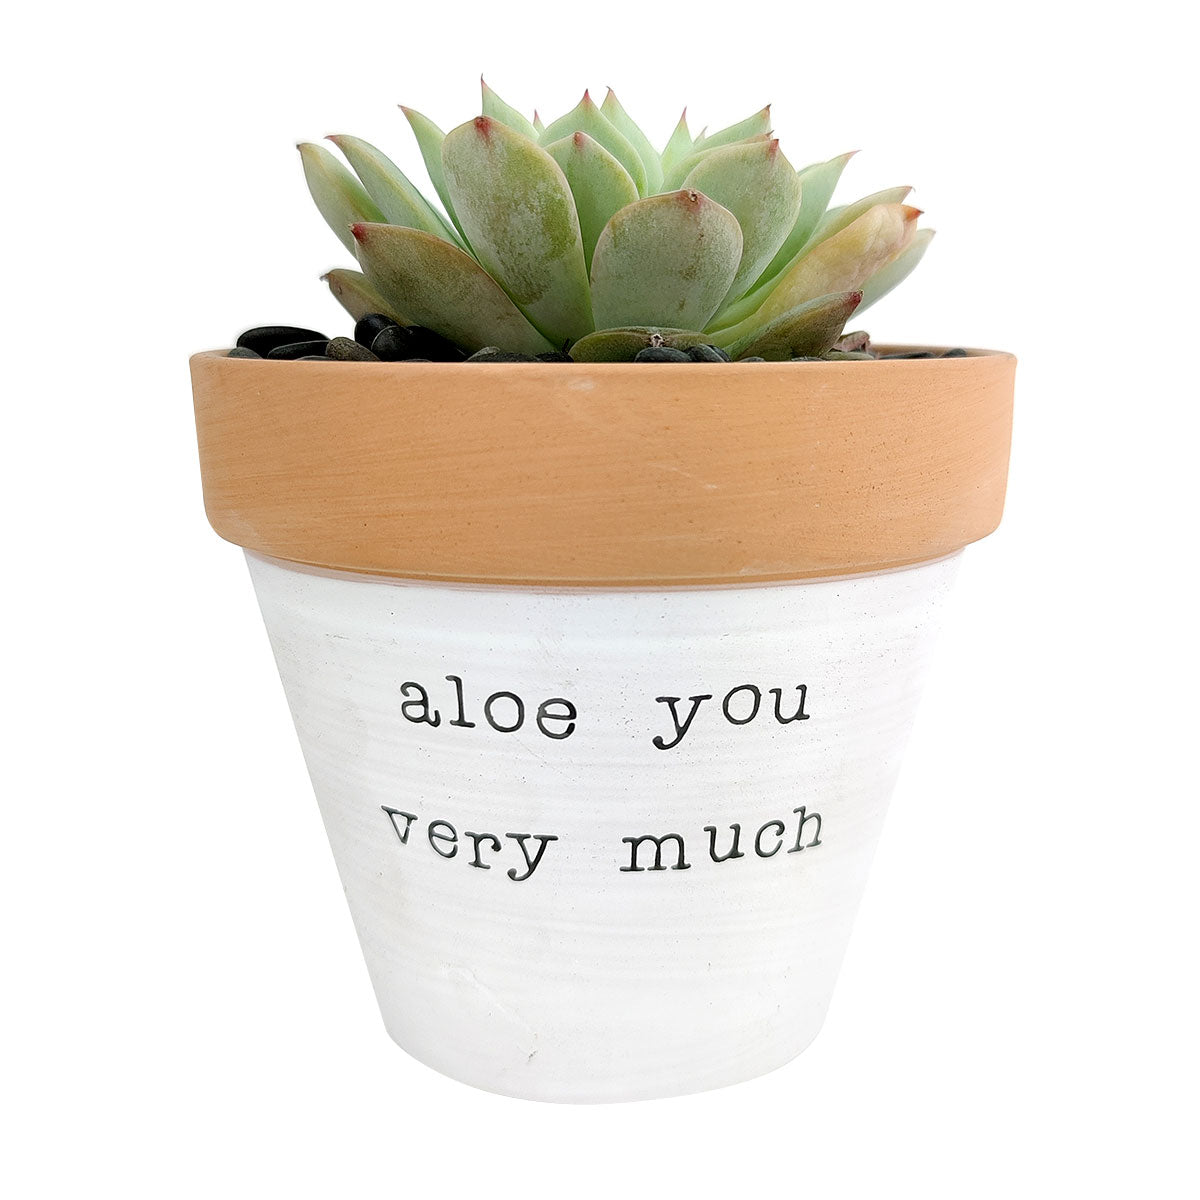 Aloe You Vera Much Pot for sale, Funny Planter, Plant with Pun, Terre cotta succulent and cactus pot, Mother's Day Gift, Gift for Mom, Indoor Planter, Gift for Plant Lovers